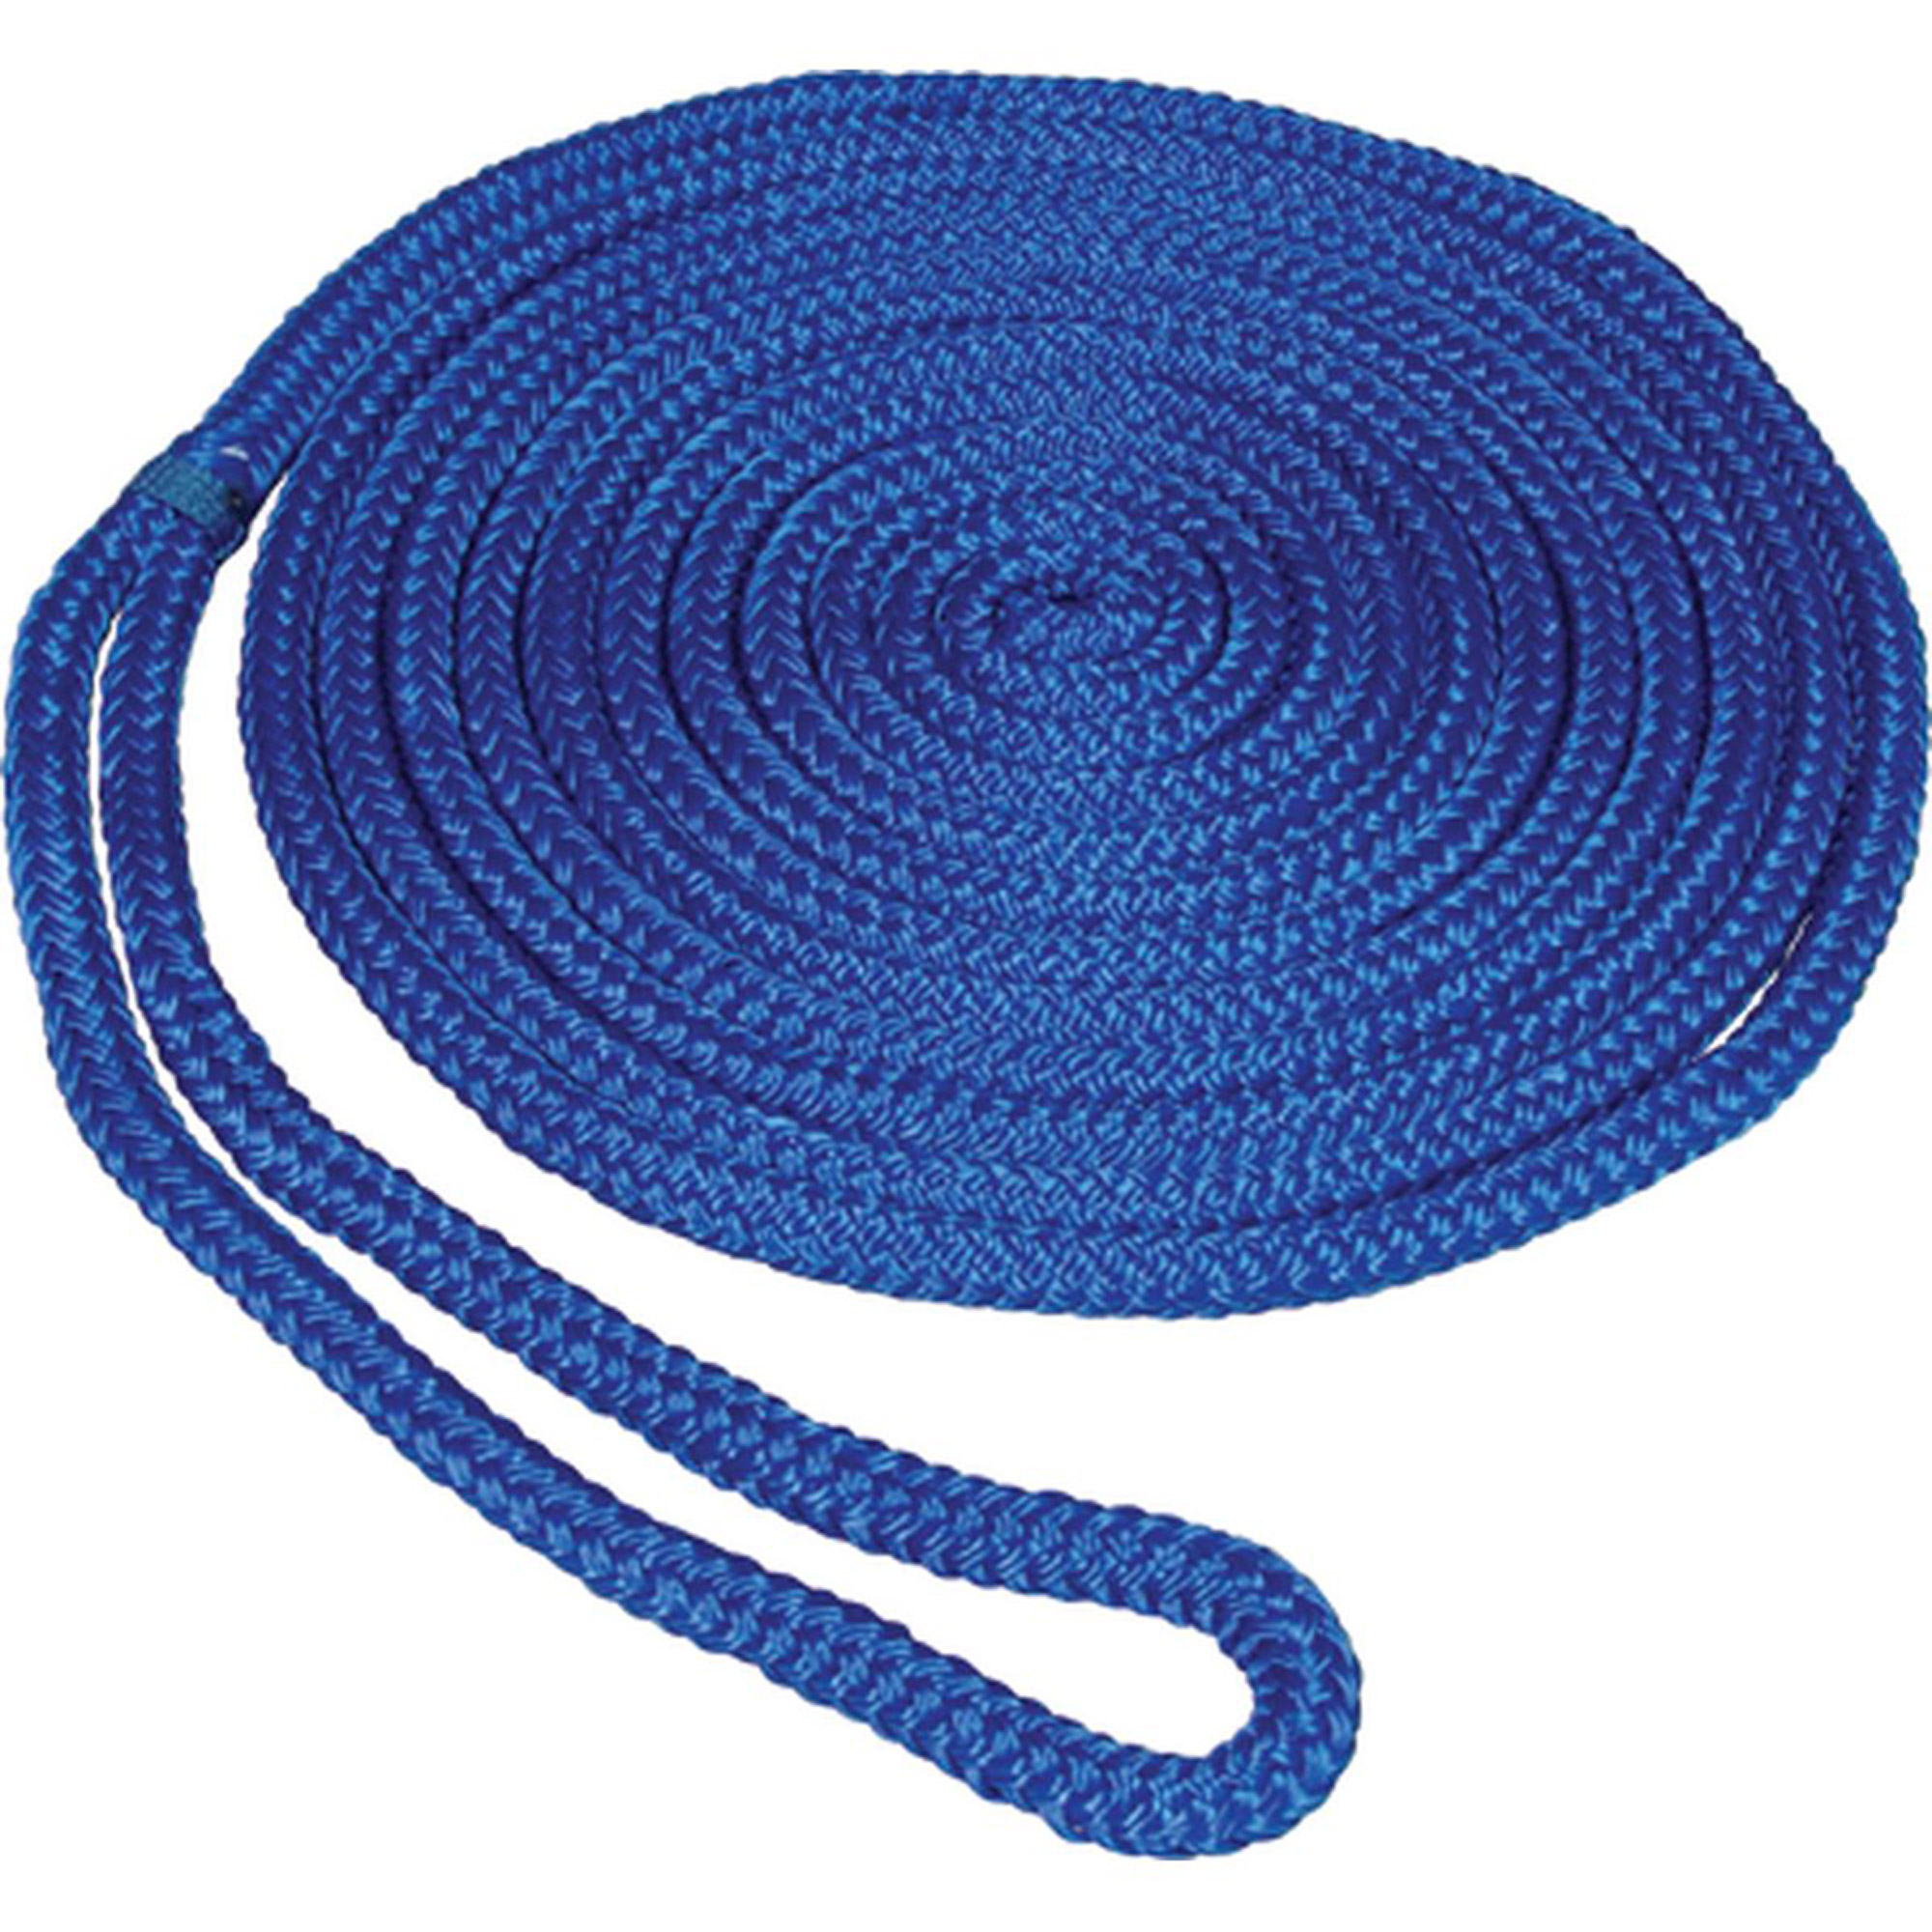 "SeaSense Pre-Spliced Double Braid MFP Dock Line, 1 2"" x 15', 12"" Eye, Blue by Generic"